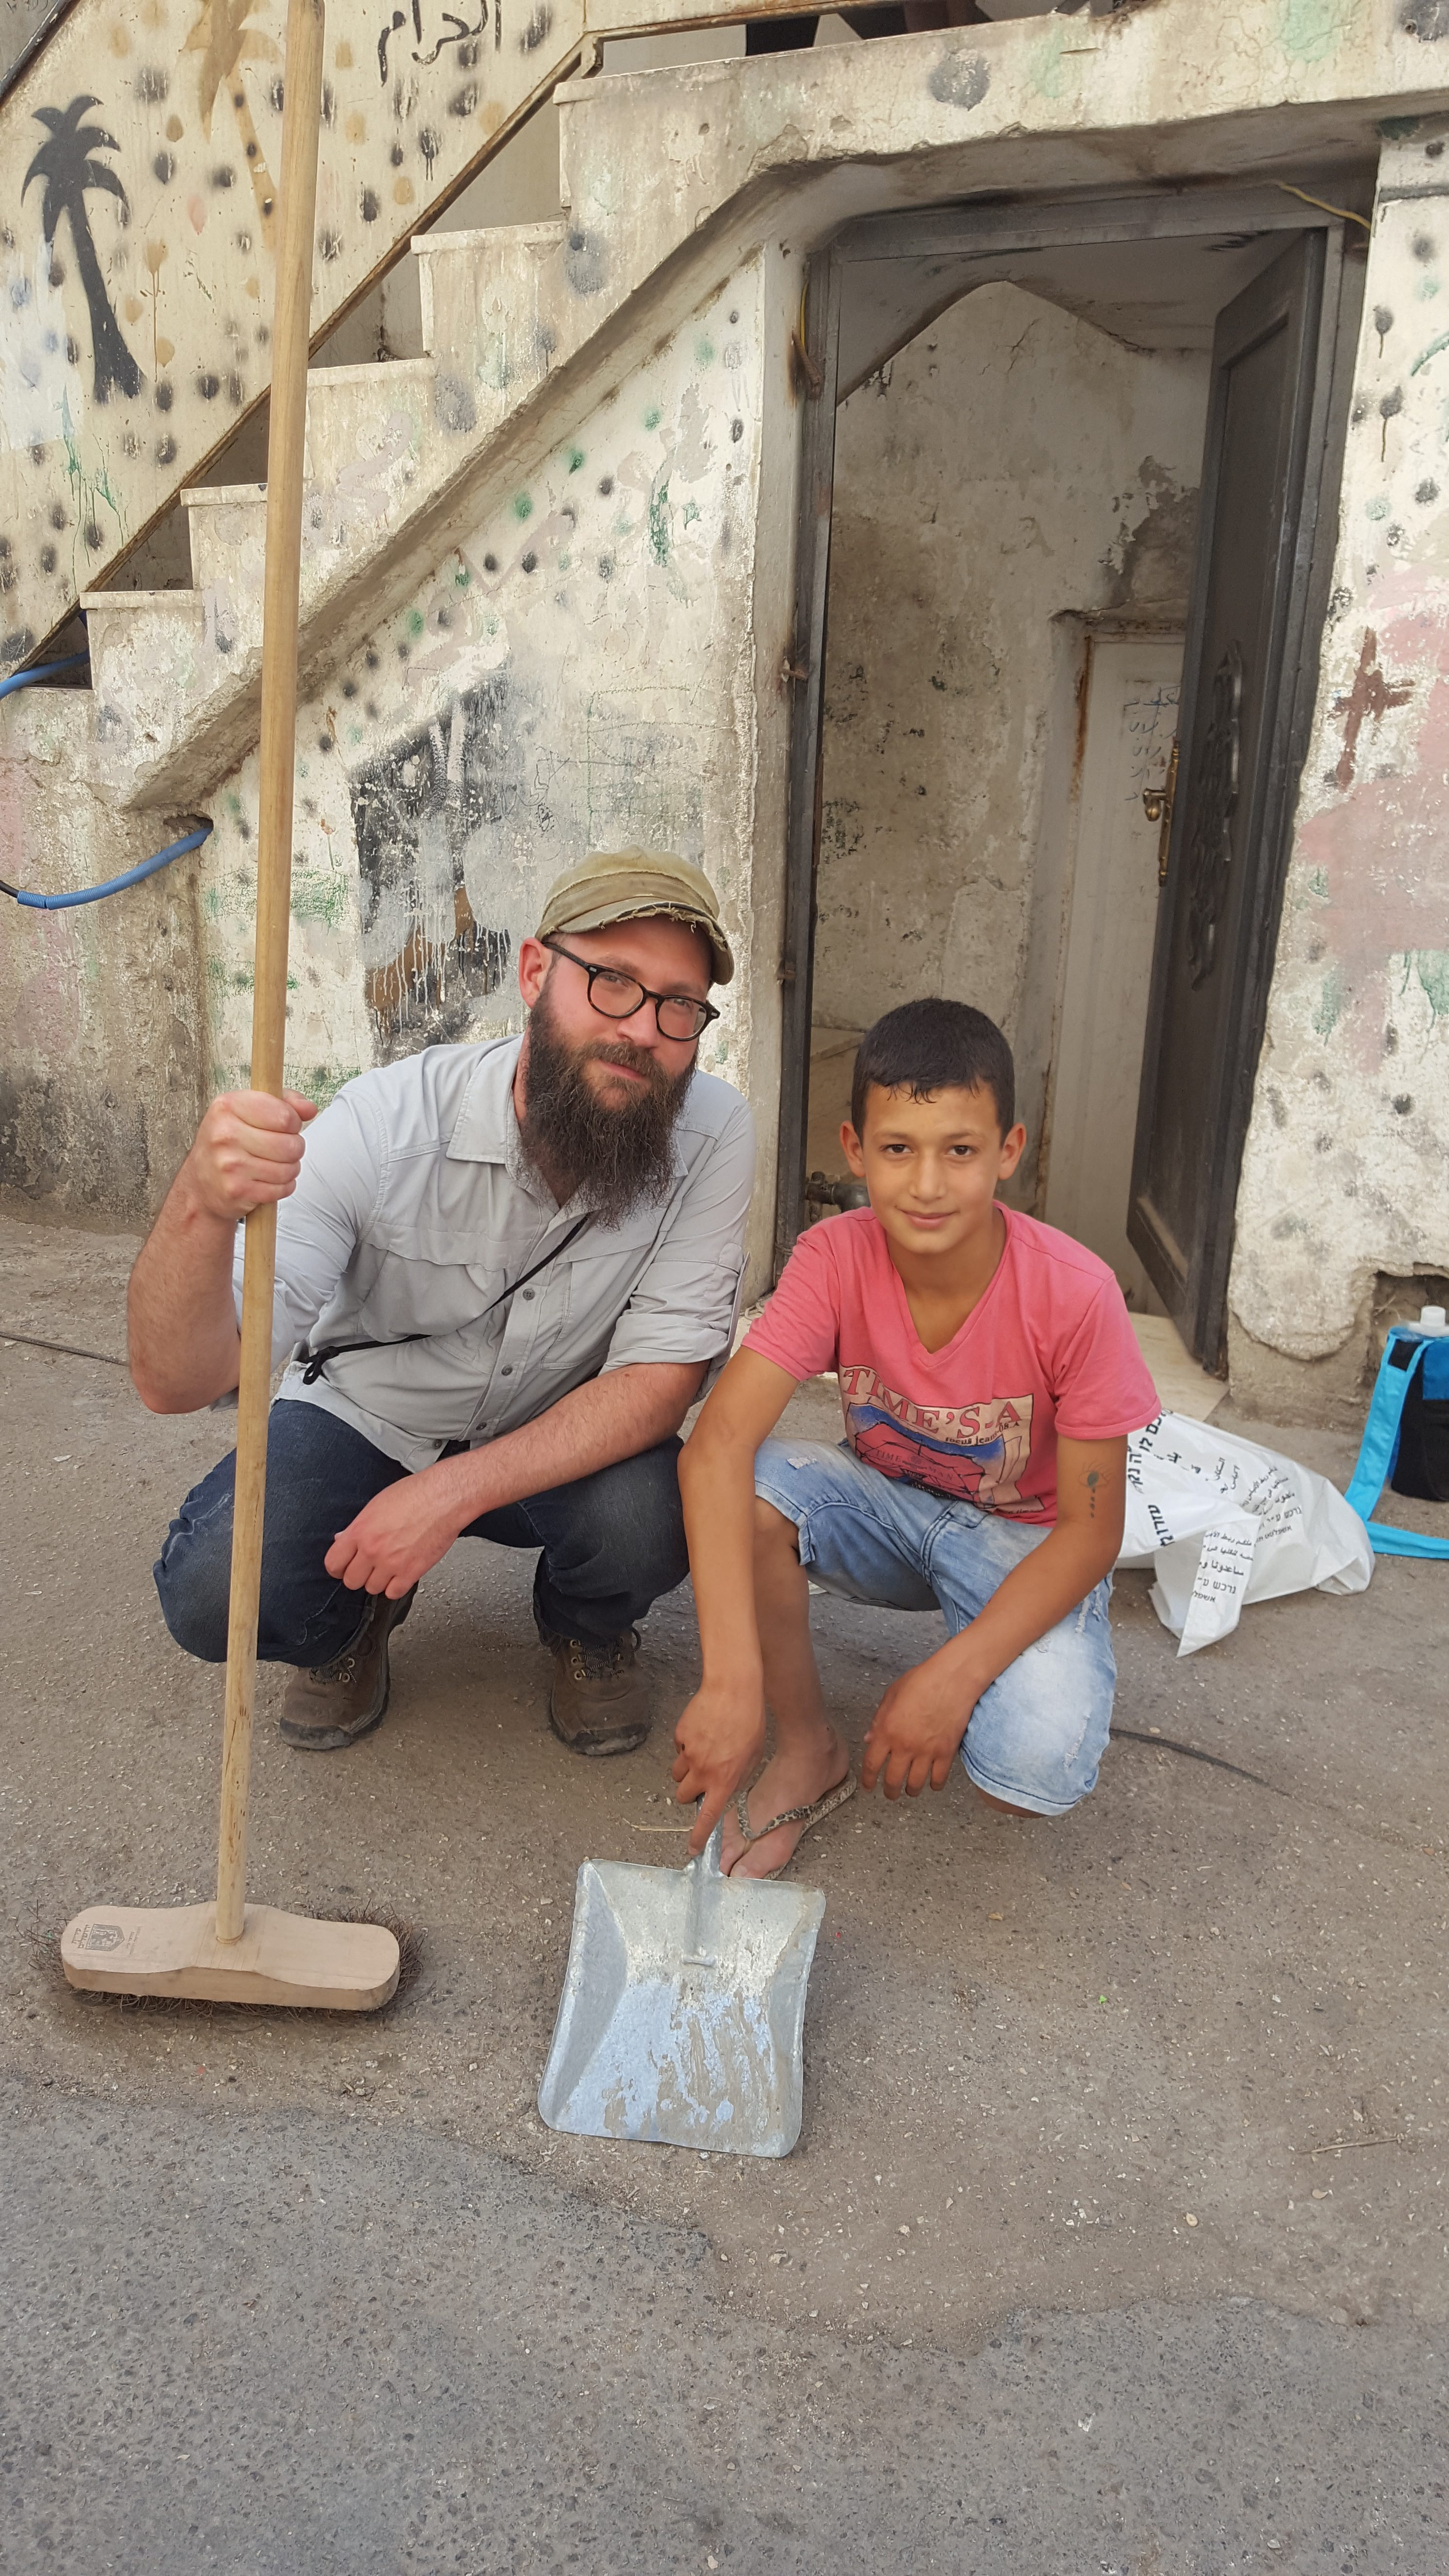 Justin cleaning the streets of Batan al-Hawa in East Jerusalem with one of our hosts, copyright Alana Alpert